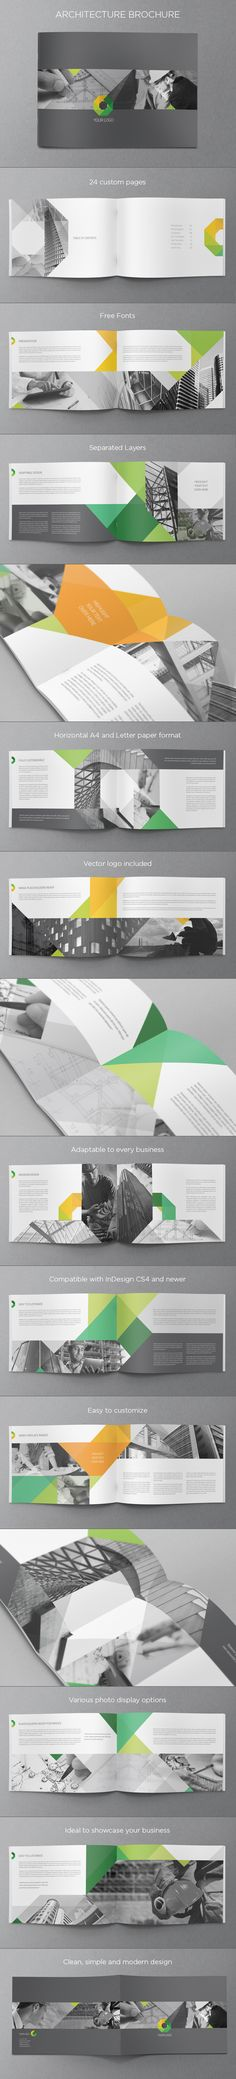 Architecture Brochure. Download here: http://graphicriver.net/item/modern-architecture-brochure/5478285 #design #brochure